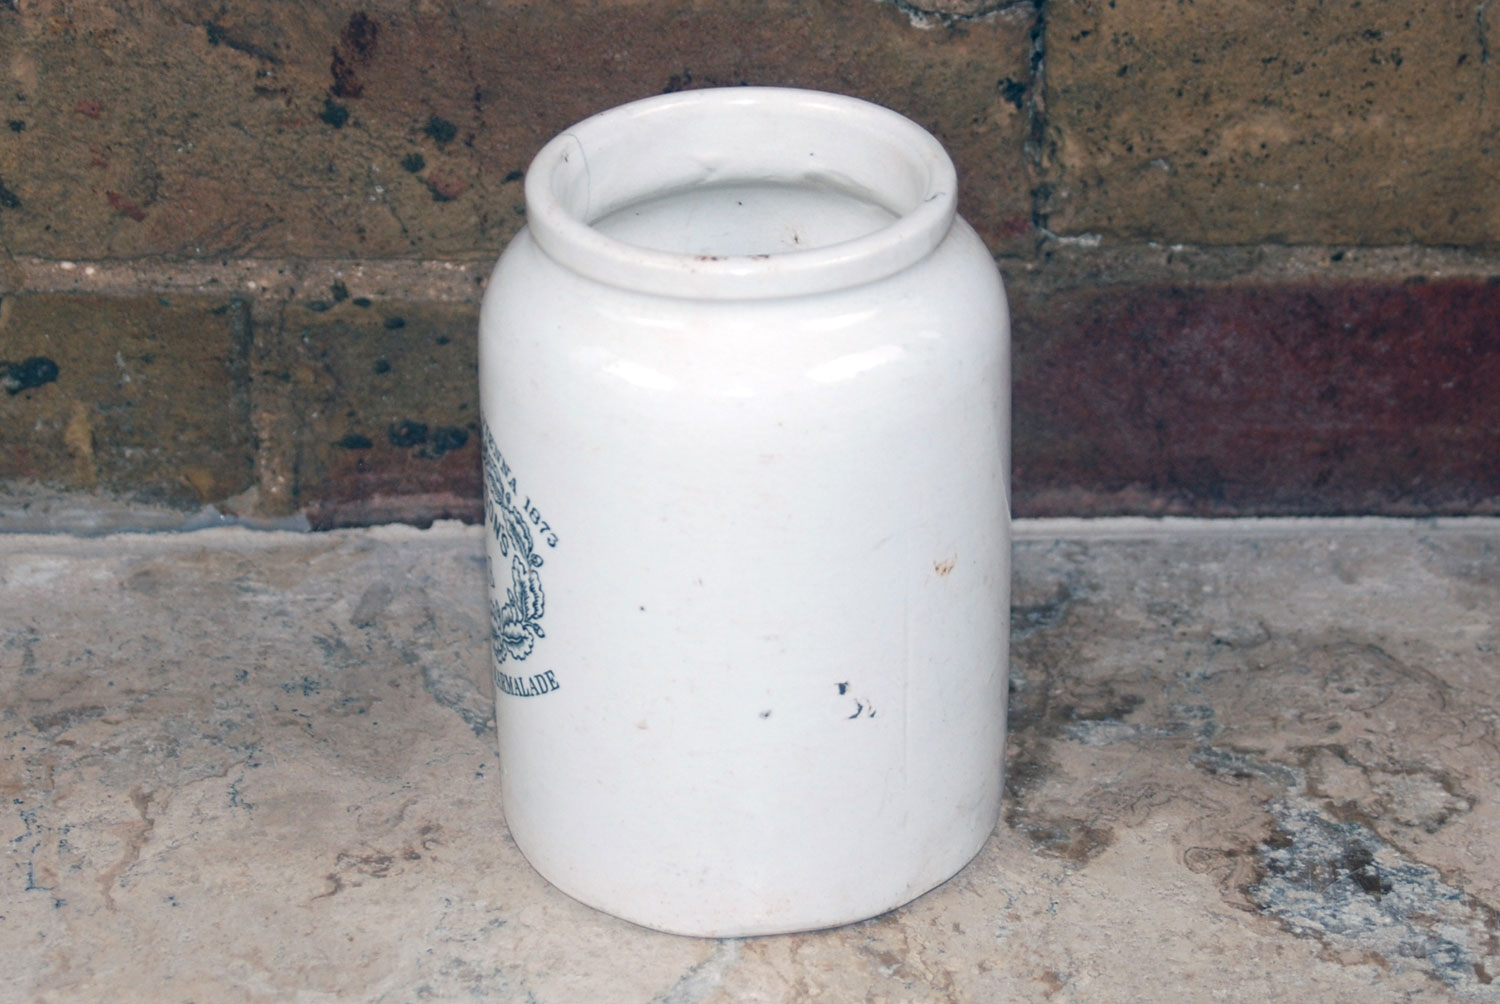 rare james keiller 2 pound collared collar marmalade pot jar white ironstone